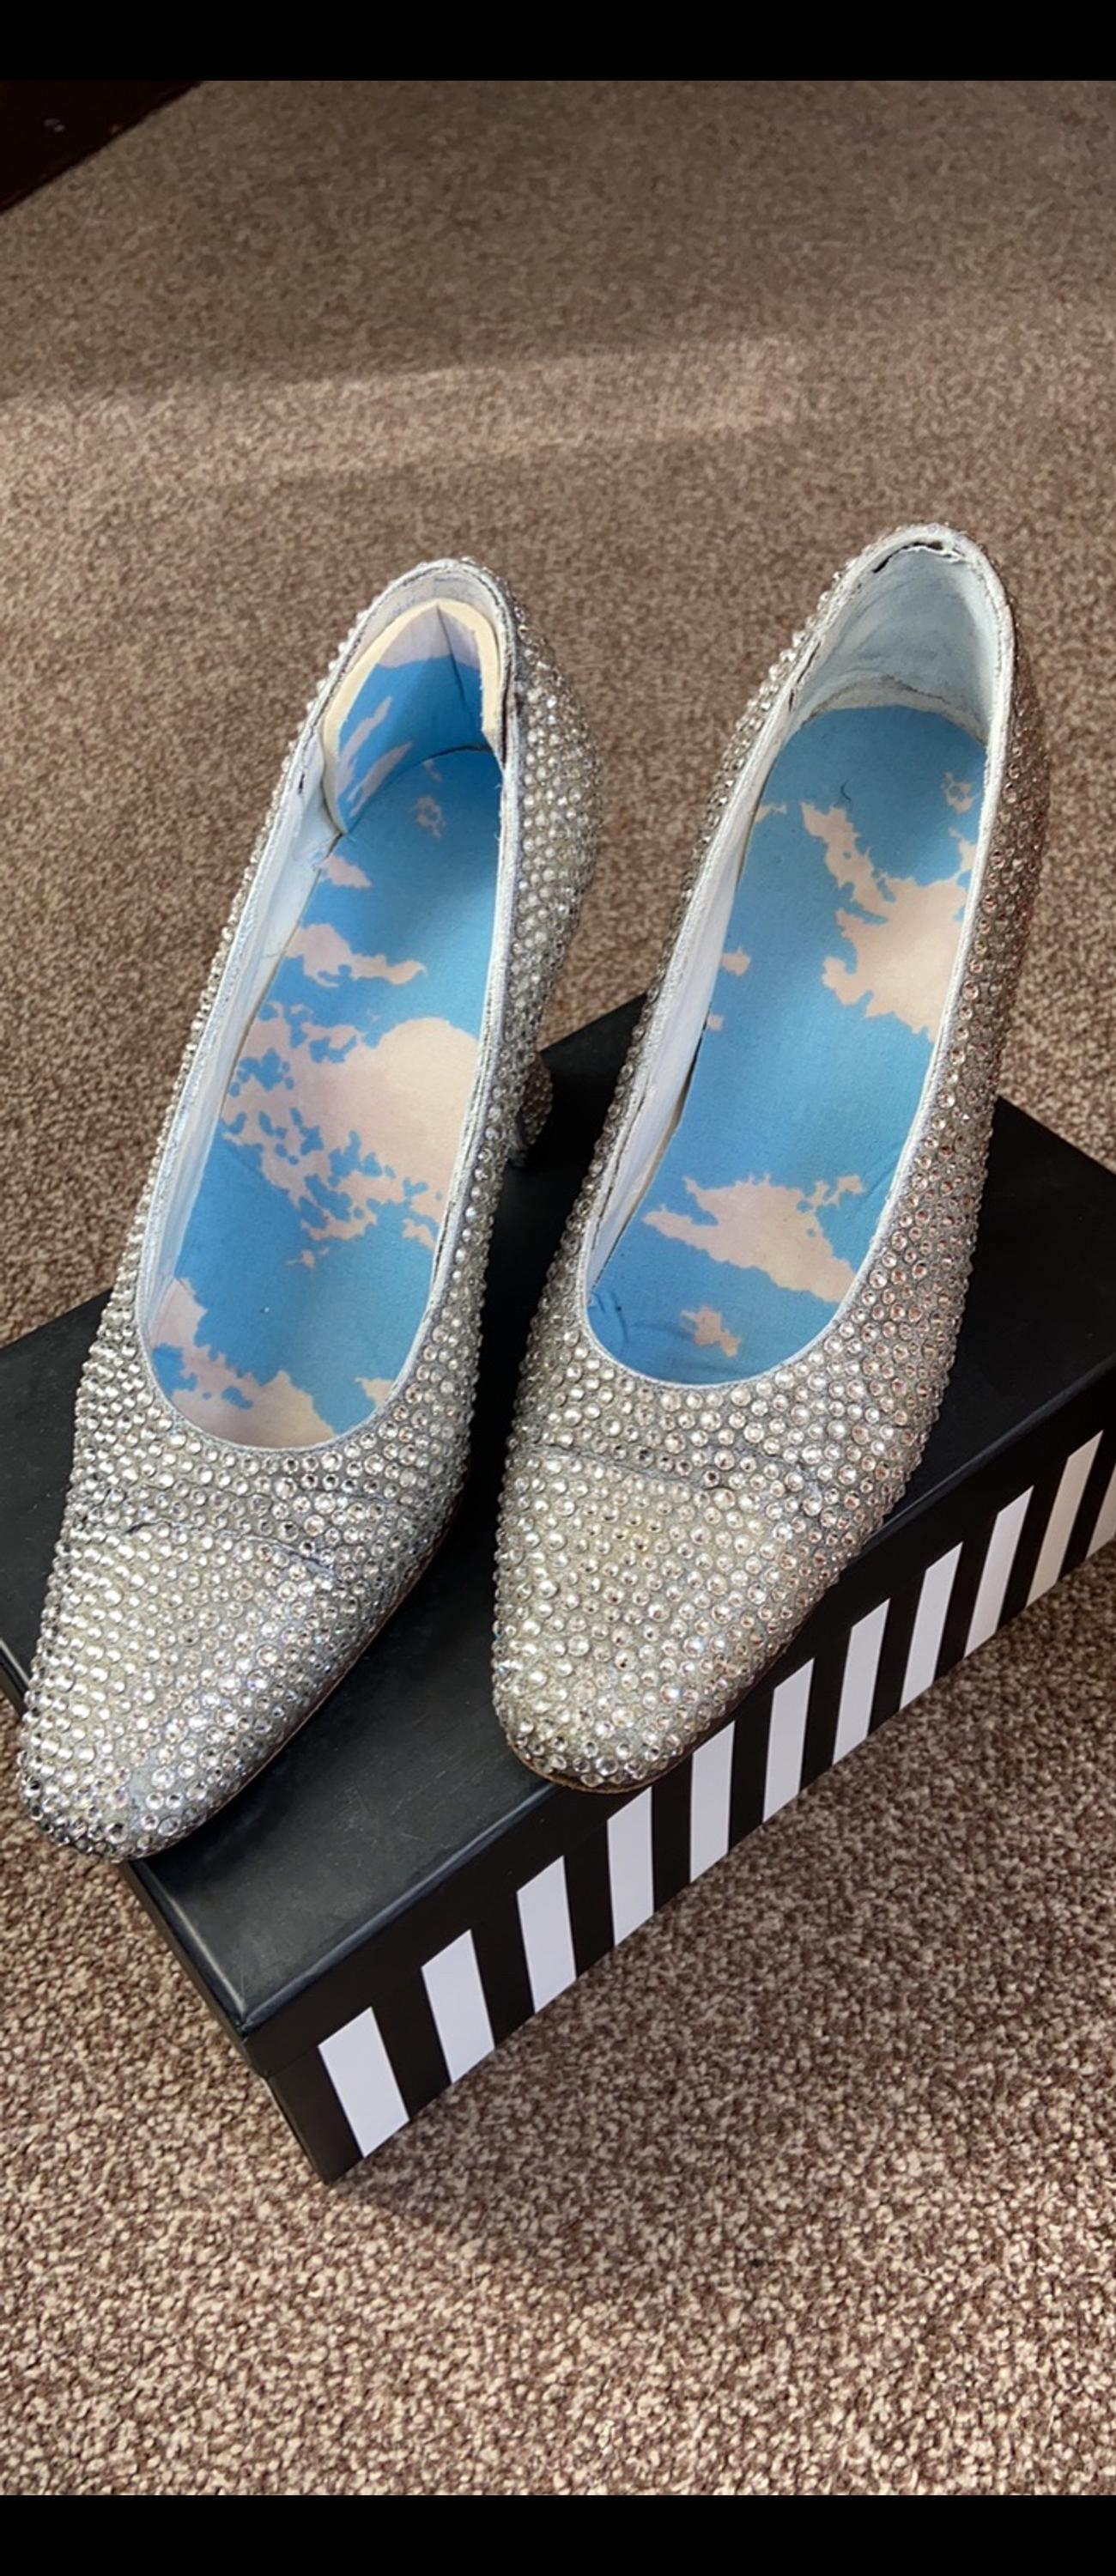 These shoes are fully customised with over 2000 Swarovski crystals and were used in a local Hertford panto a few years ago,hence the inside lining/insoles Size 4.5 Collection Hertford